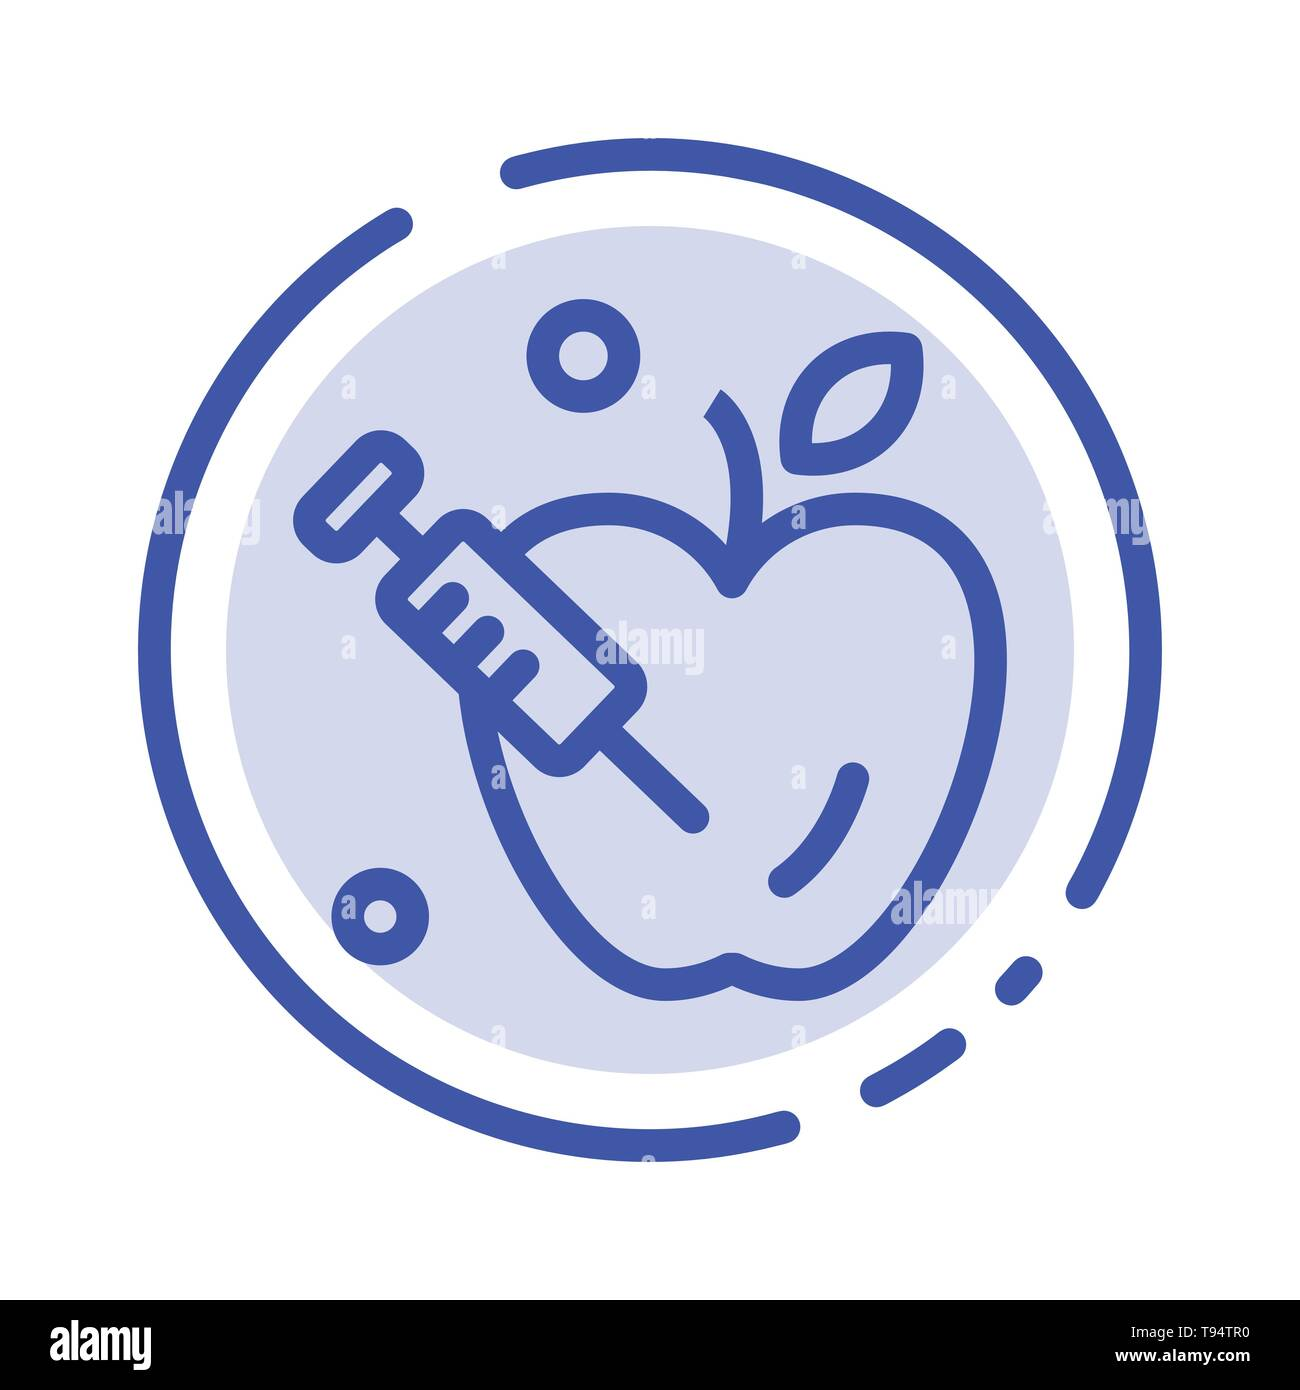 Apple, Gravity, Science Blue Dotted Line Line Icon - Stock Vector